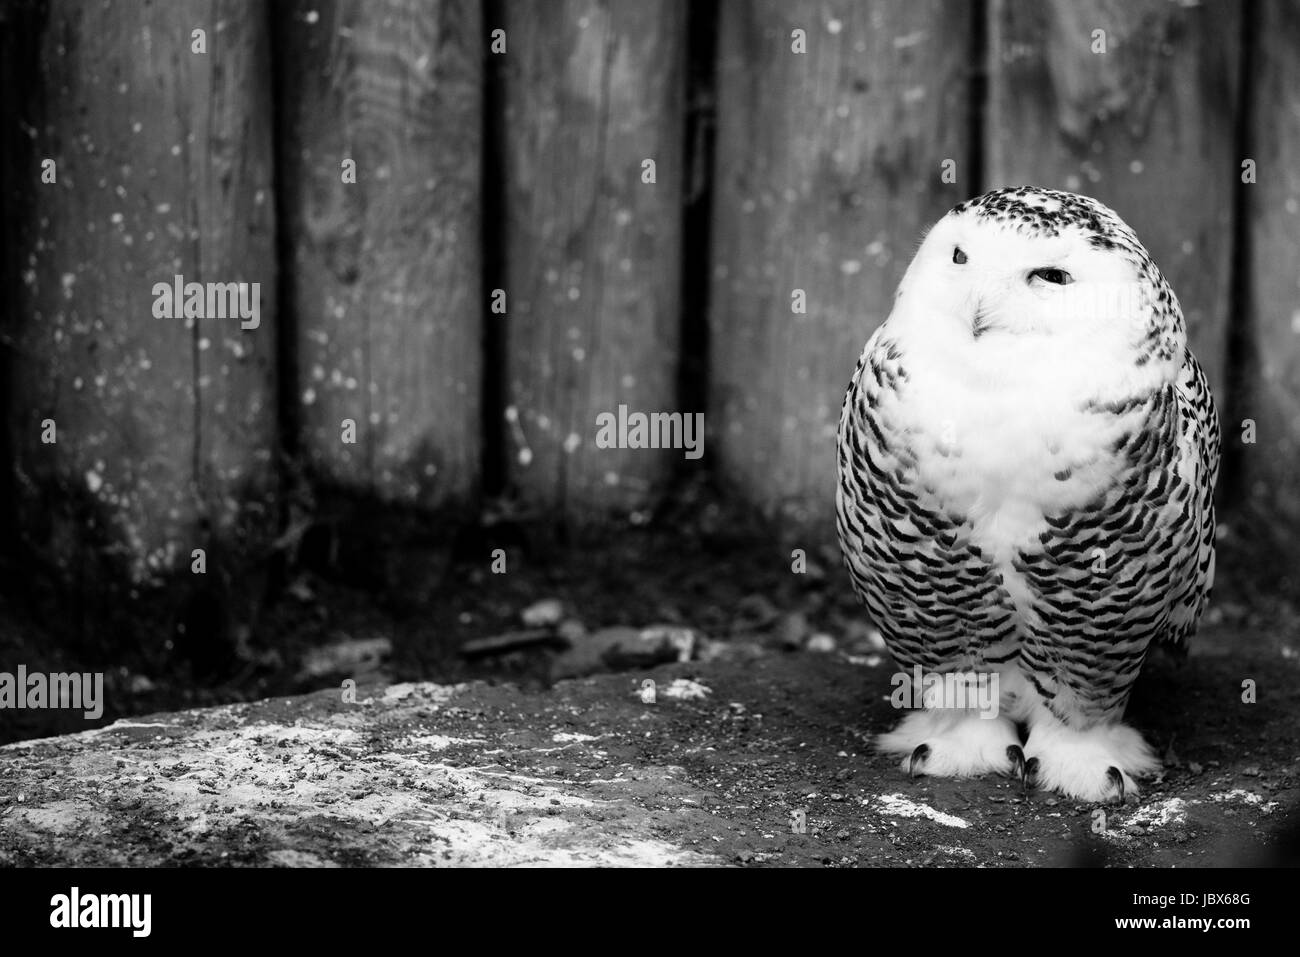 Snowy Owl Face Black And White Stock Photos Images Alamy